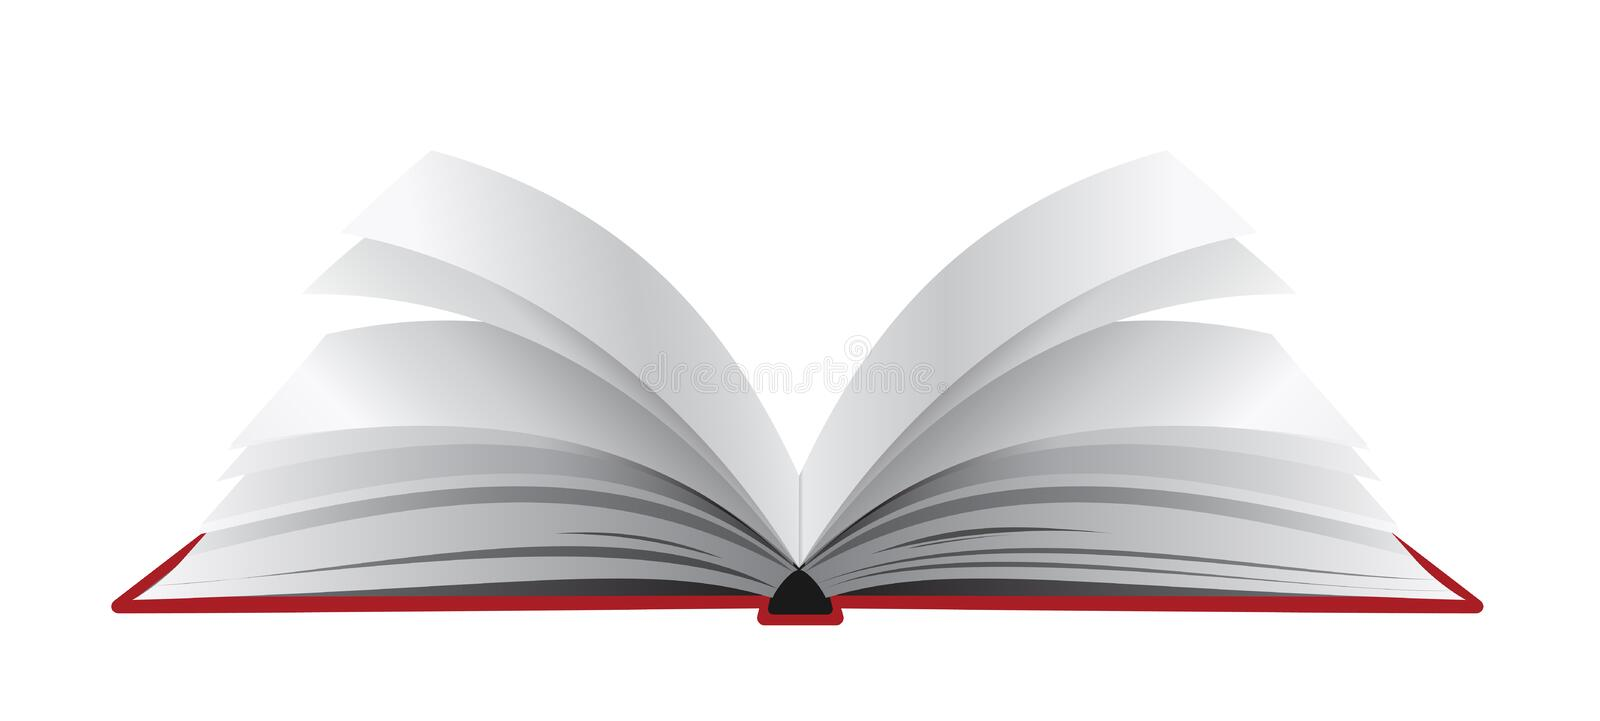 Download Opened book stock vector. Image of creative, page, library - 19738600